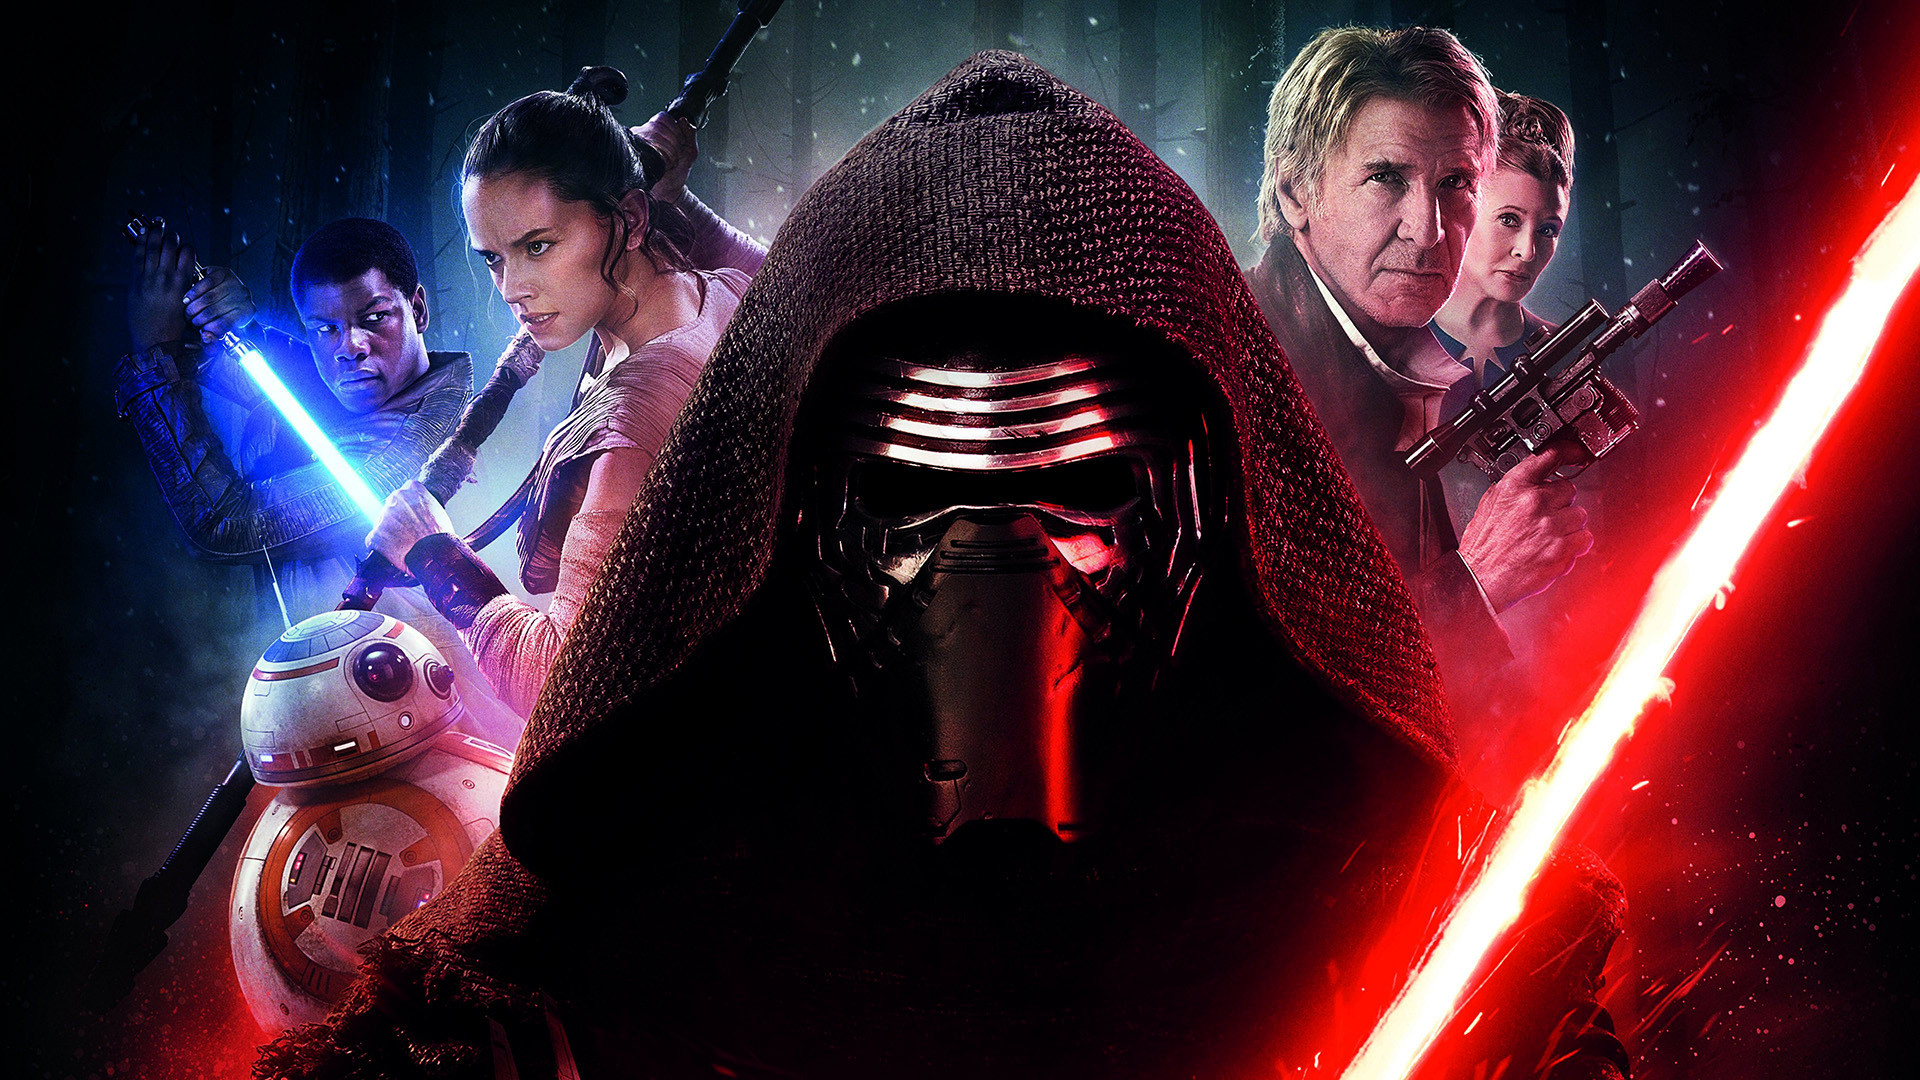 Star Wars Episode VII: The Force Awakens Full HD Background